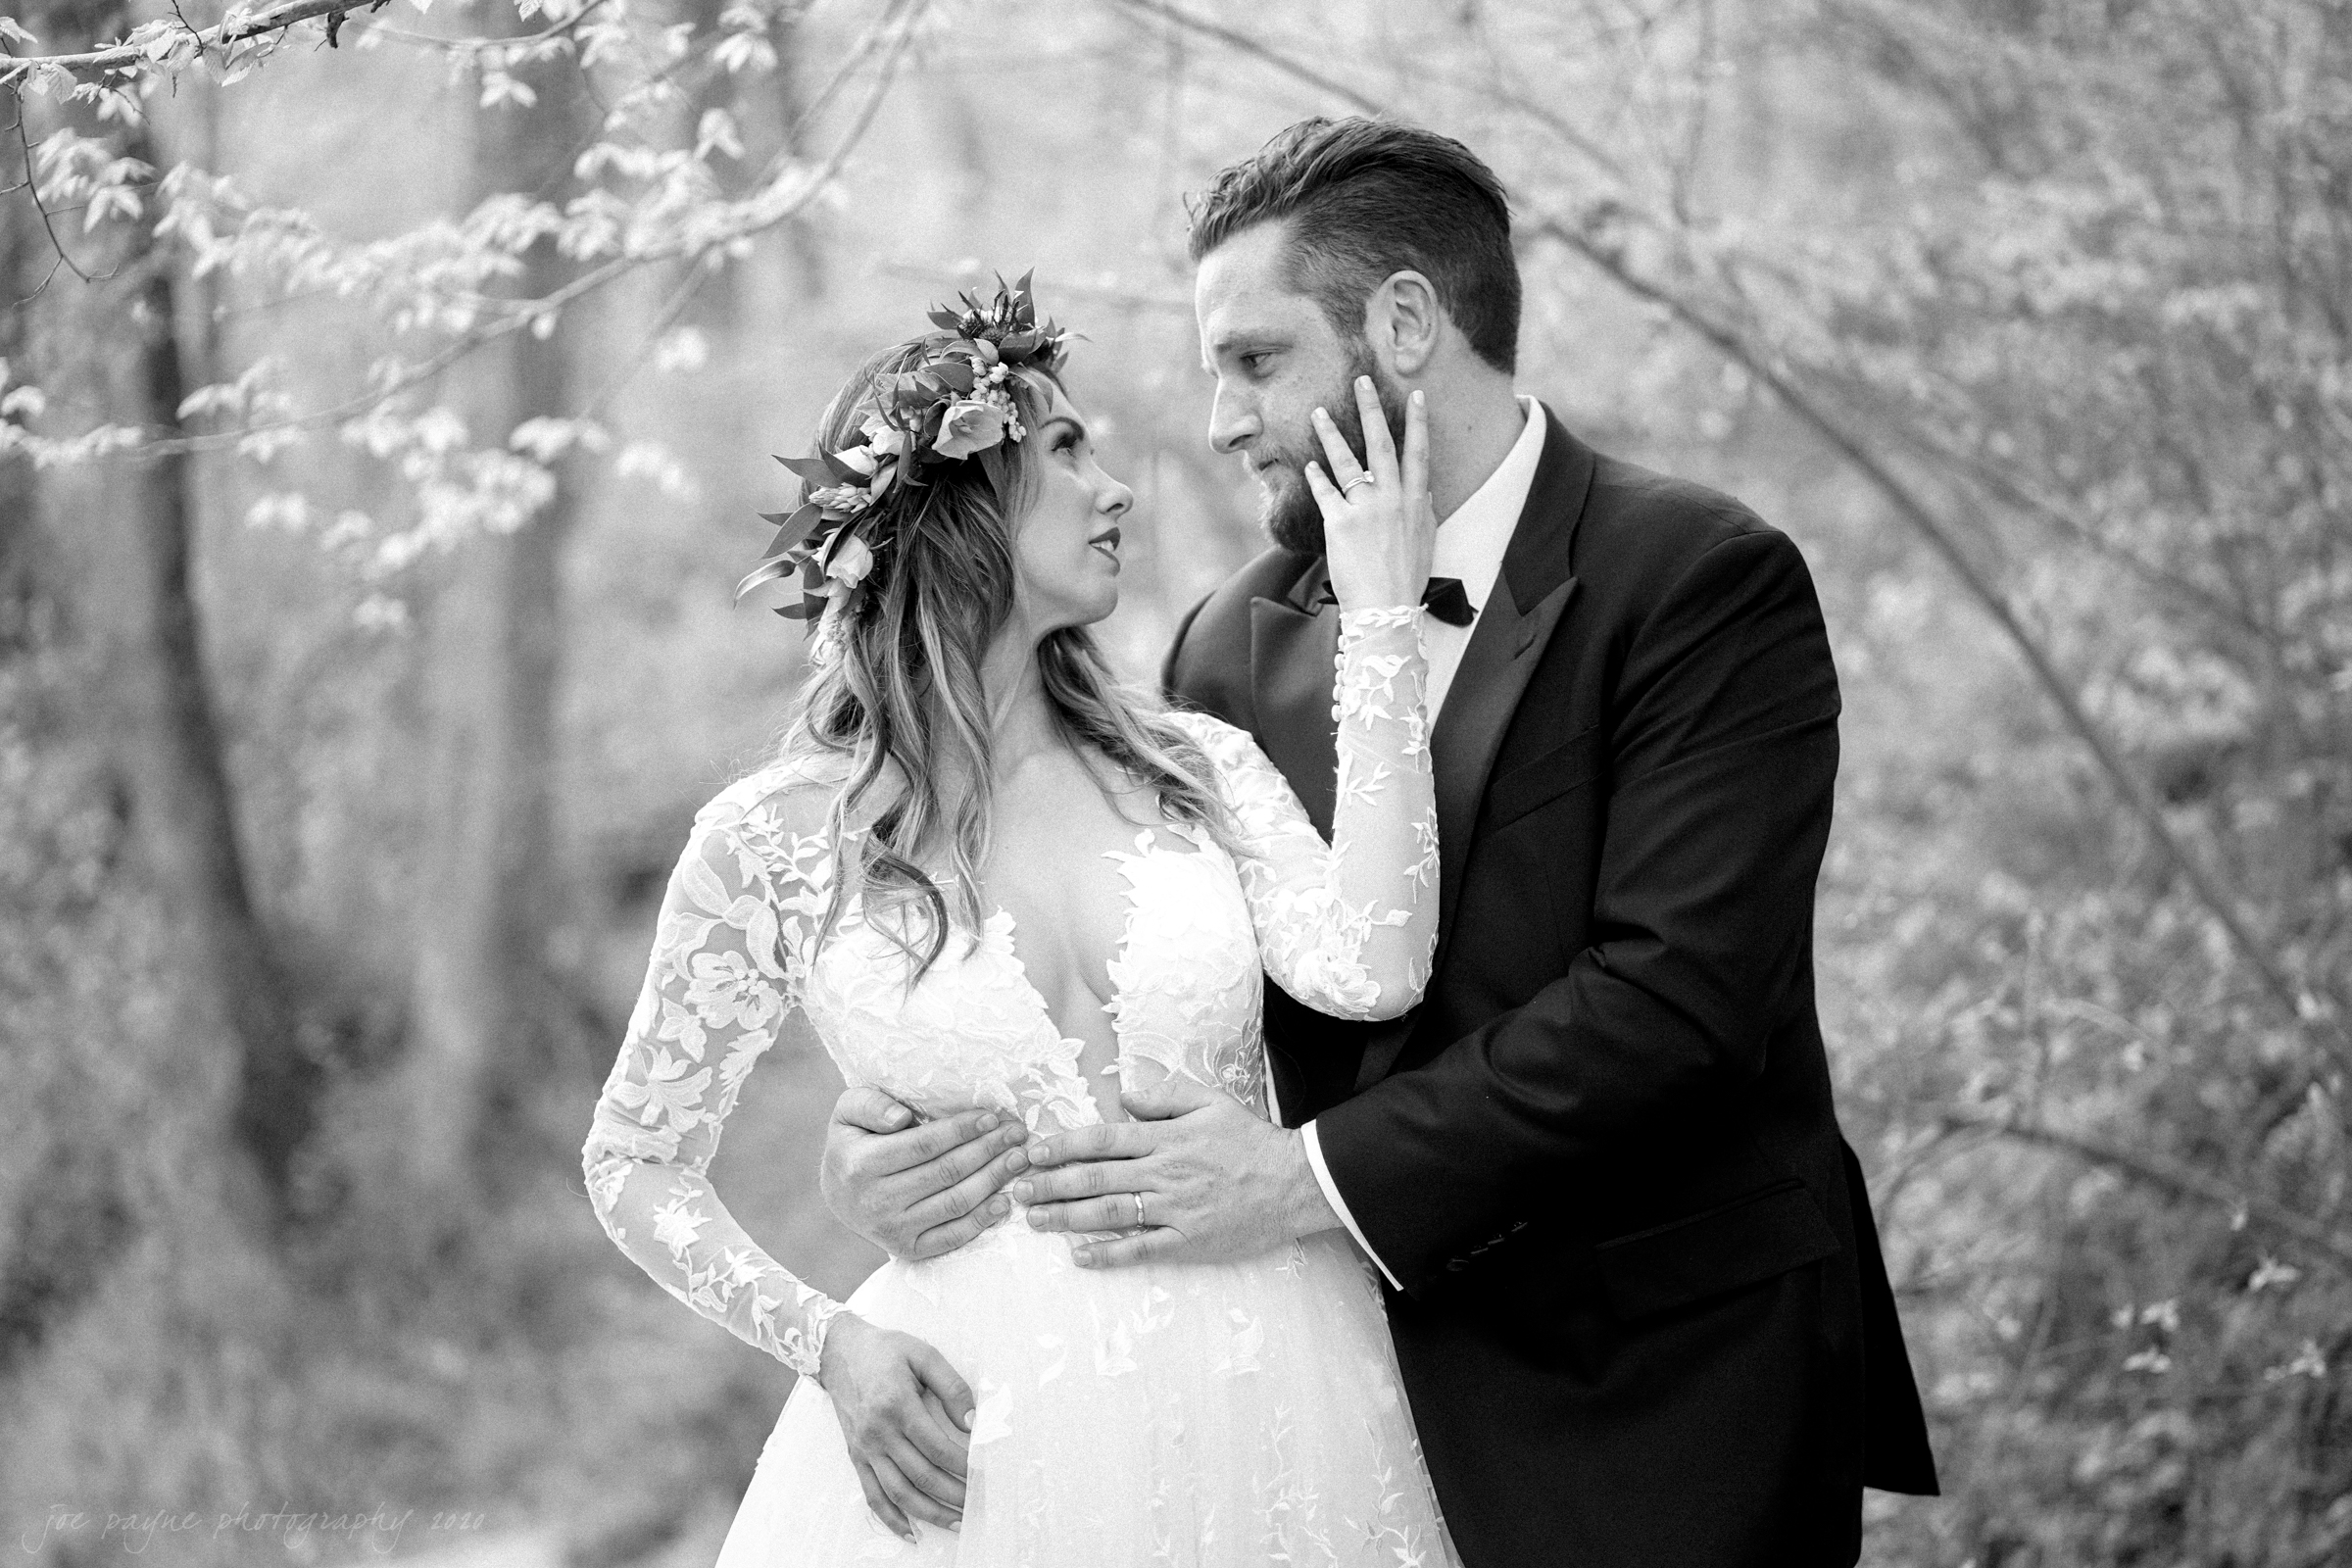 umstead hotel park wedding photography brittany harrison 2 2